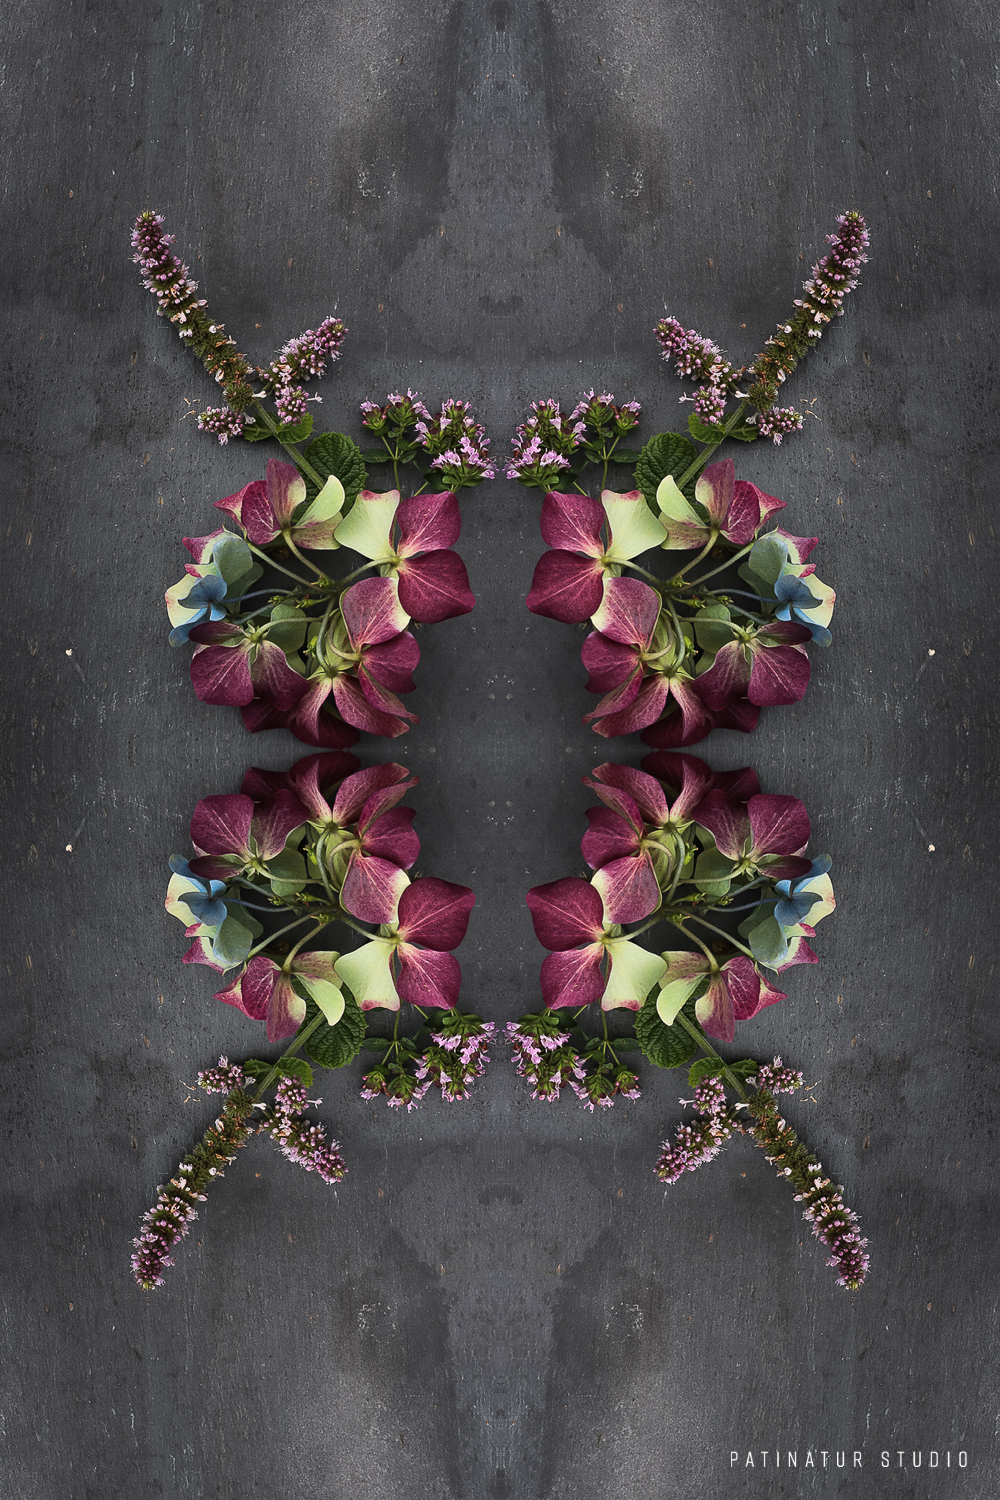 Photo art | Botanical caleidoscope in purple